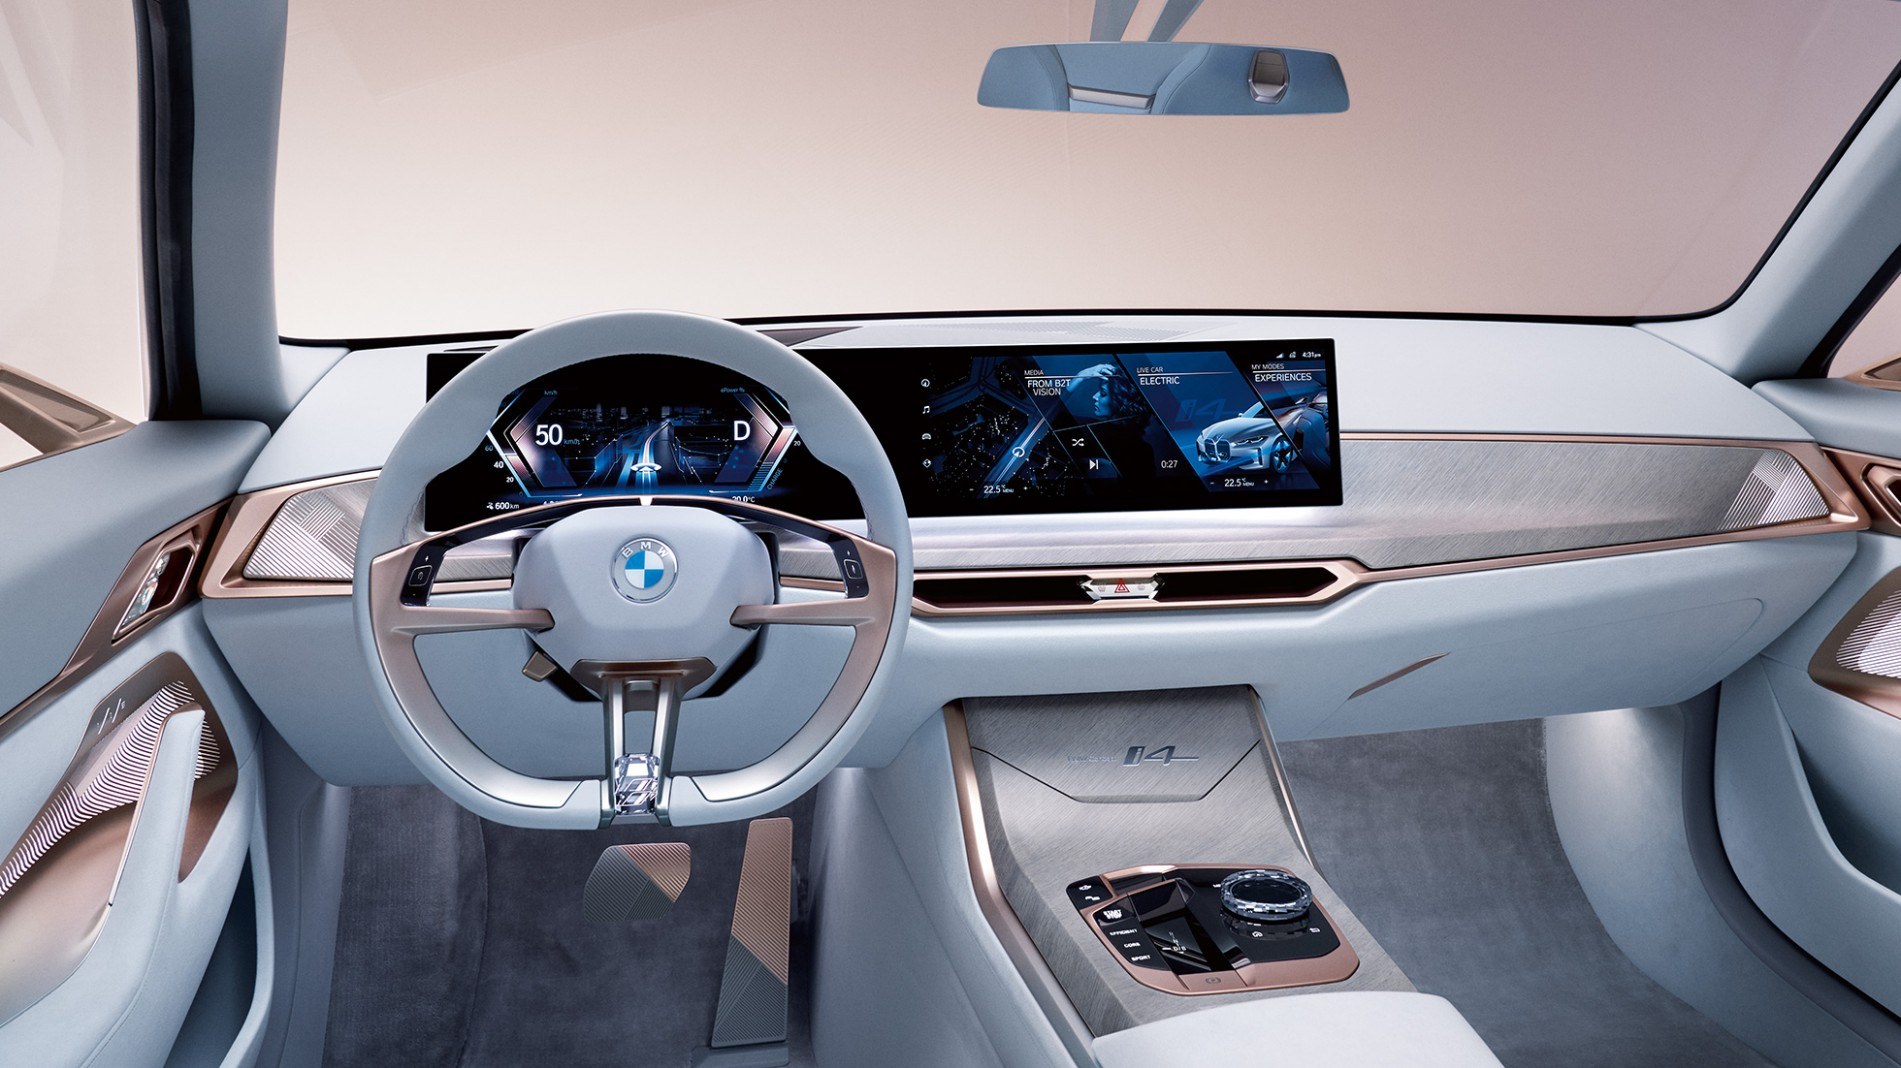 BMW Concept i3: Discover Highlights of the all-new BMW electric - BMW I4 2021